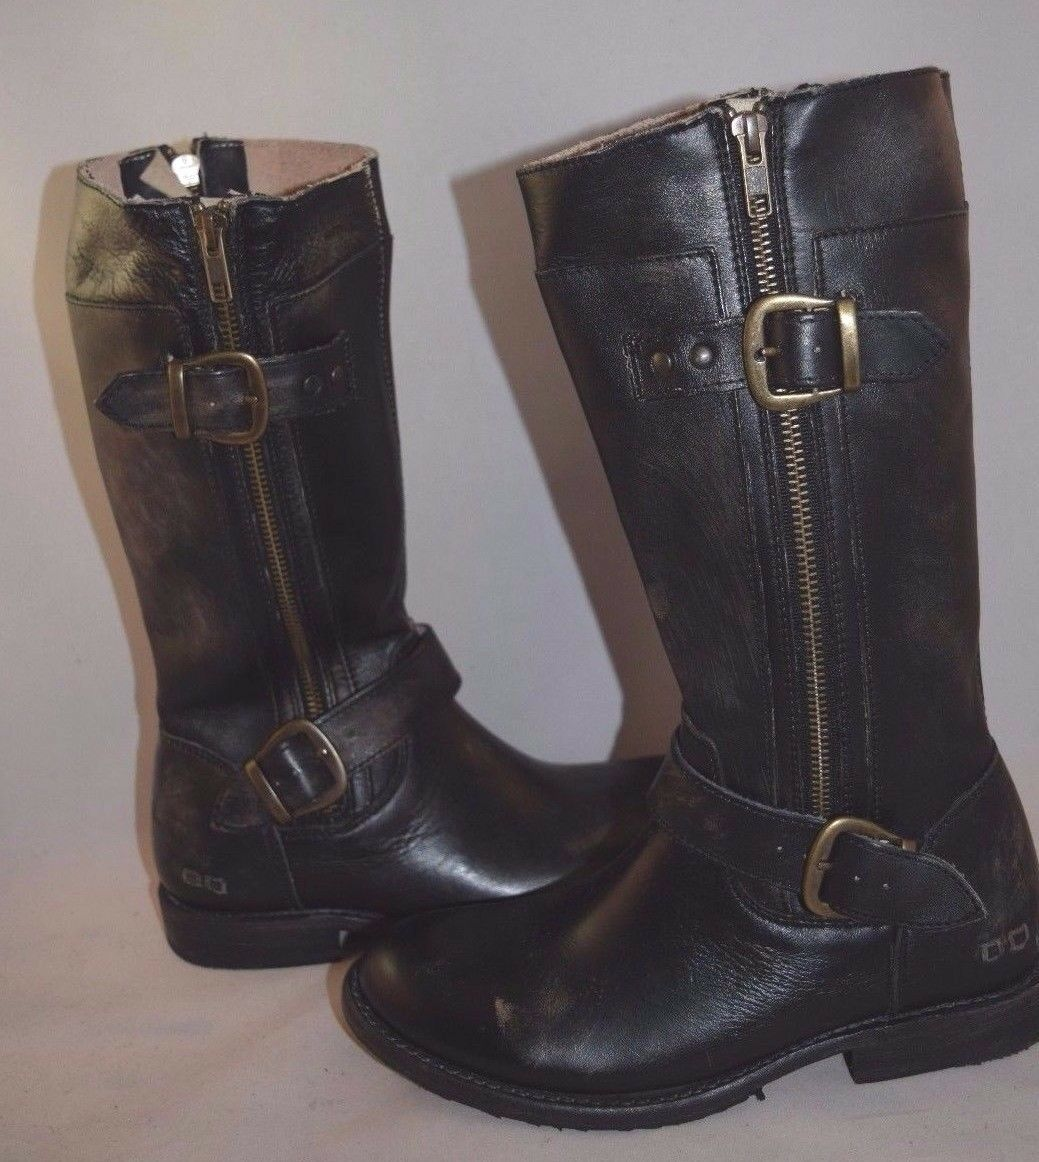 New Bed Stu 'Gogo' Boot Black washer Leather Women's    Size 6.5M   295 945d8e